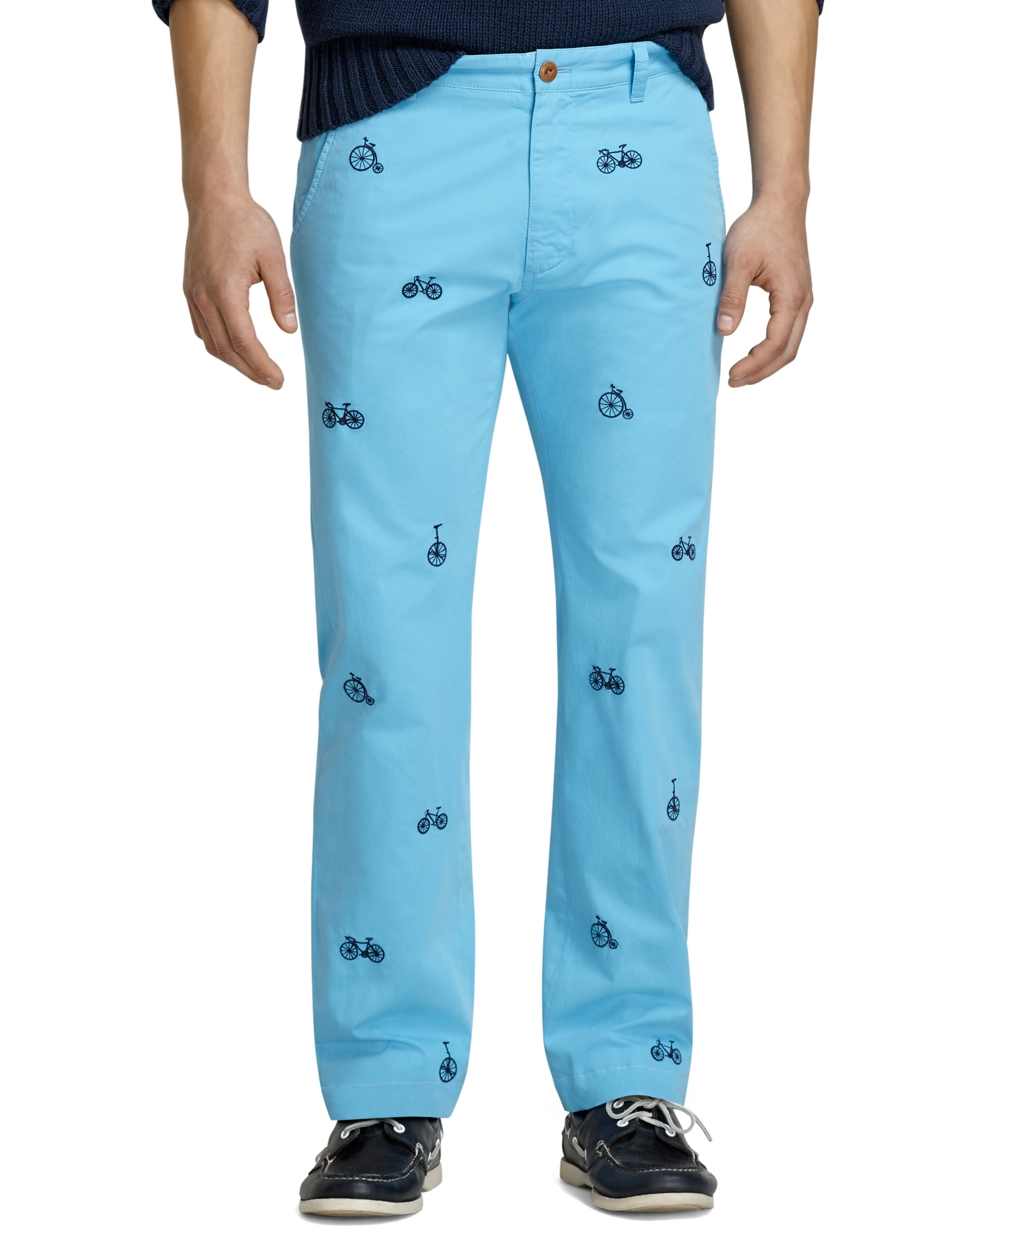 NWT's Brooks Brothers Boys 14 Corduroy Pants Embroidered Winter Holiday  Penguins